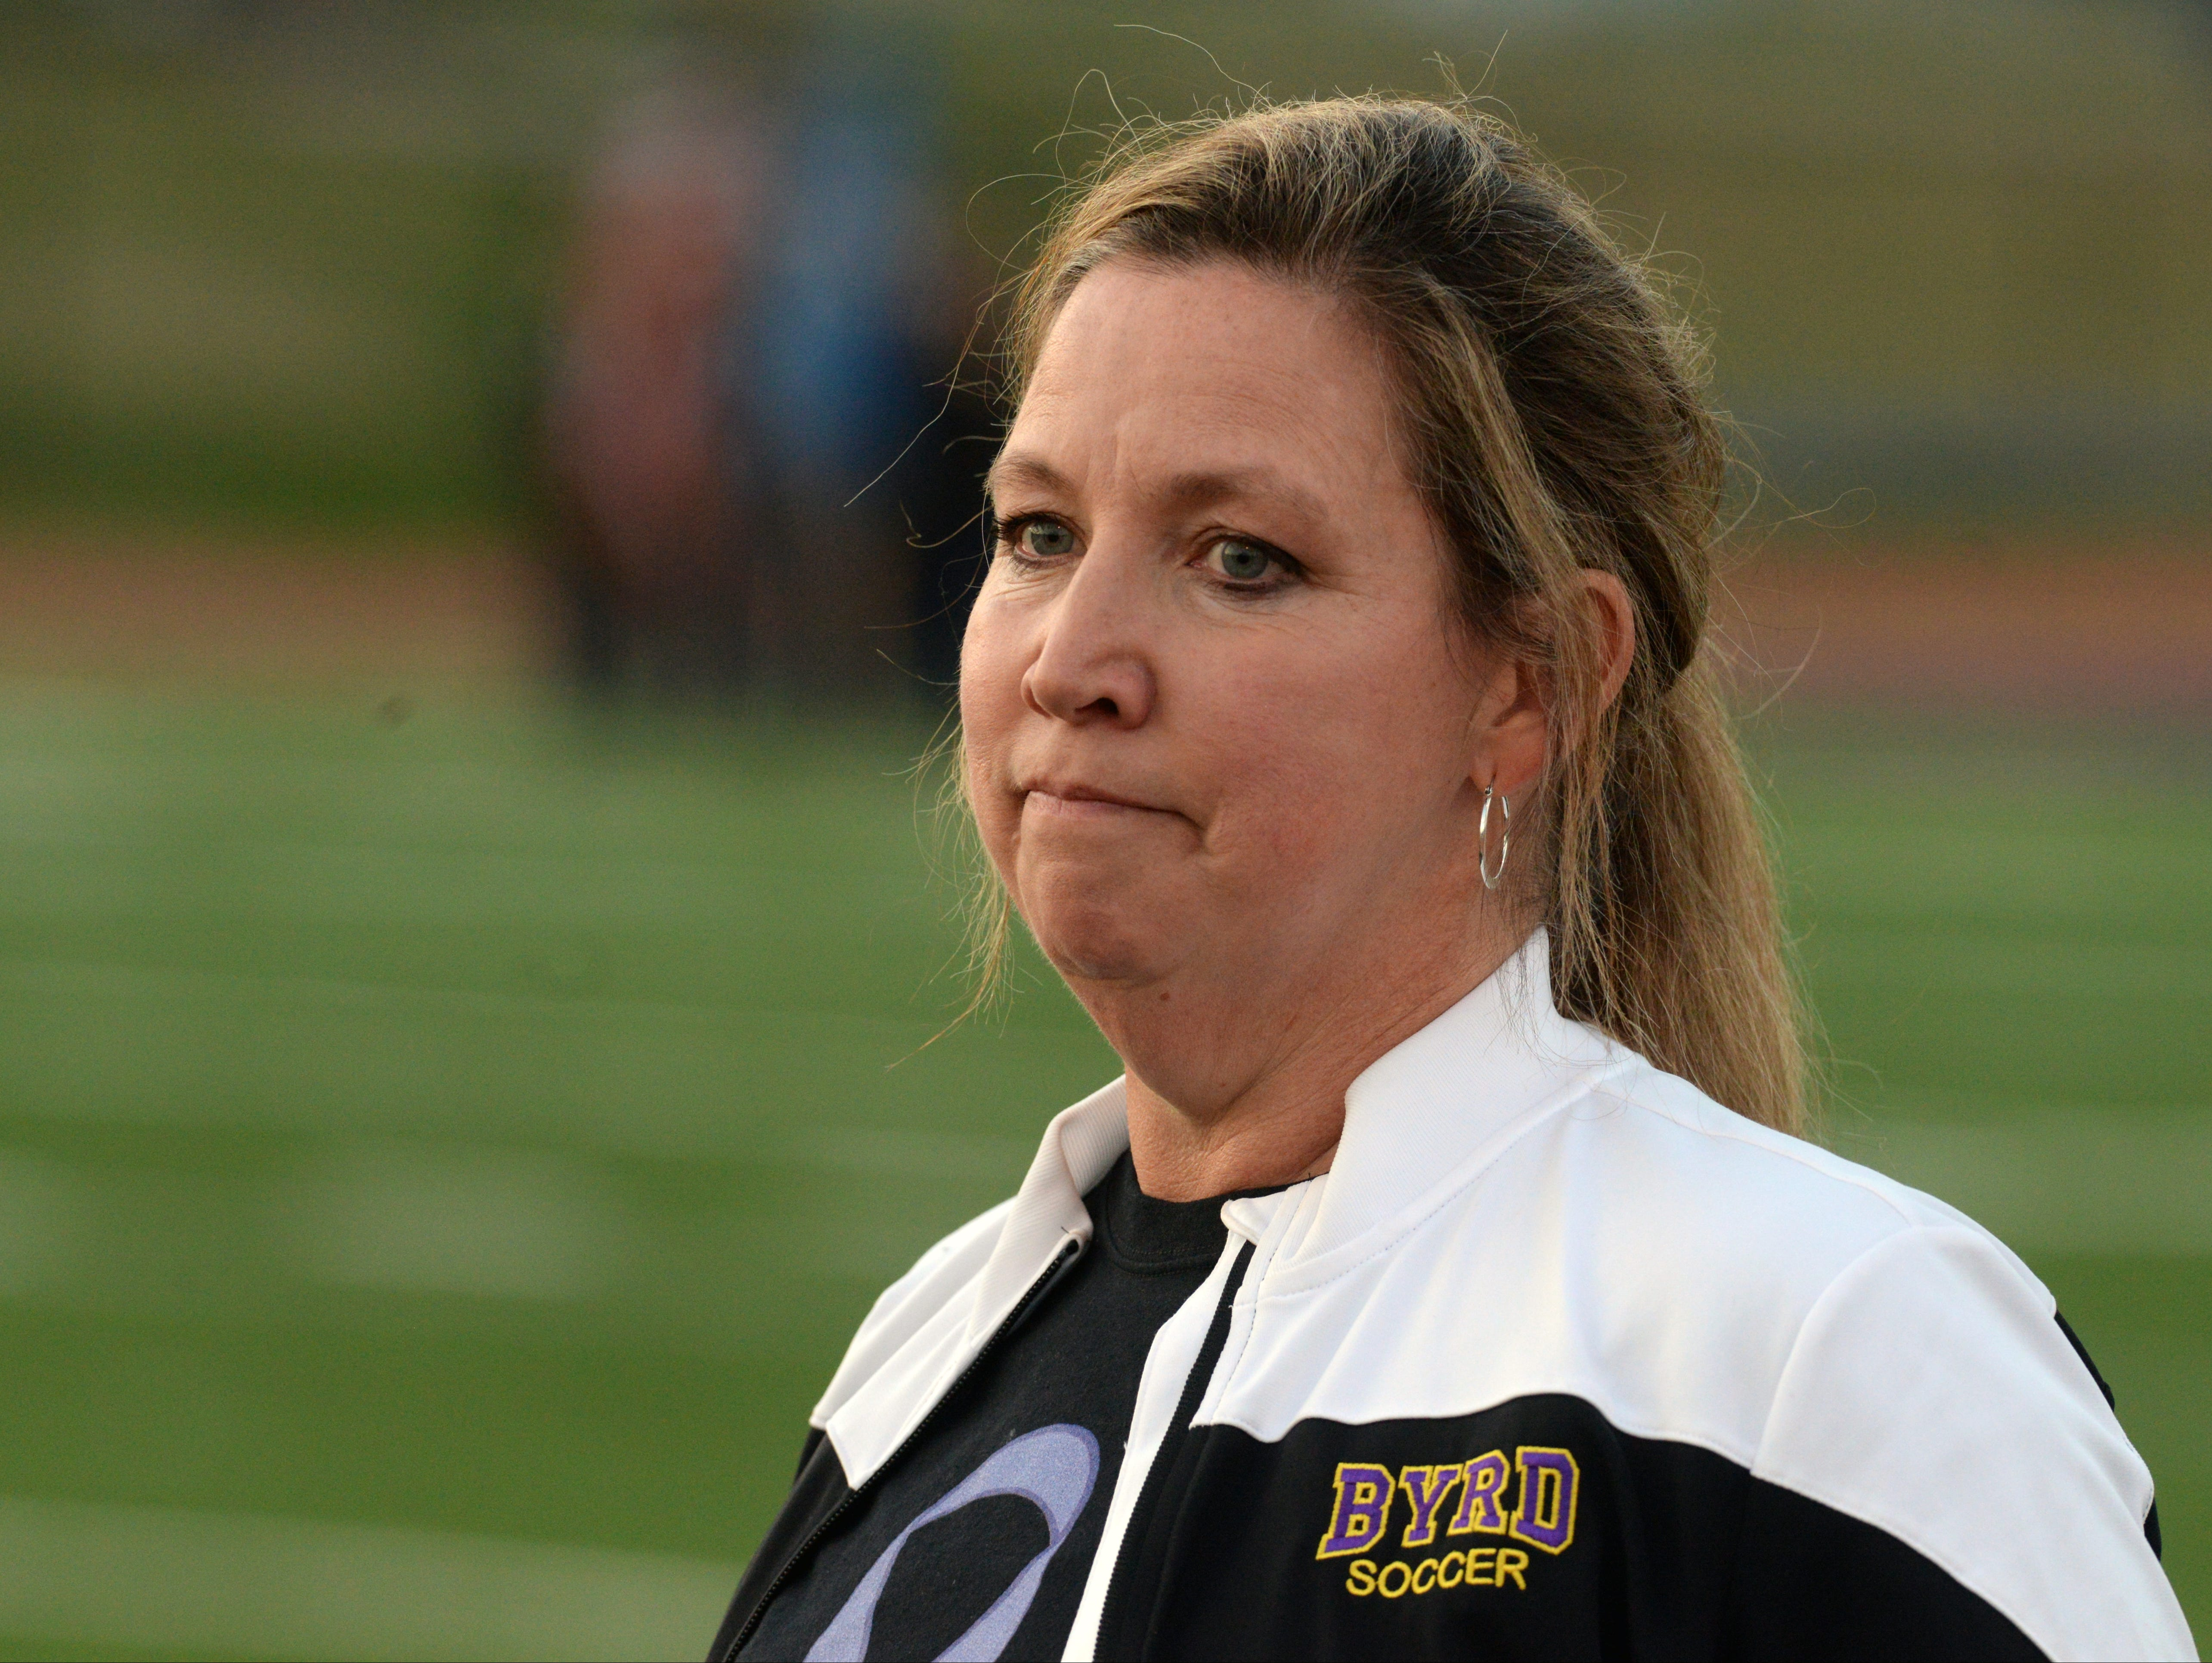 Byrd head coach Lisa Levermann and the Lady Jackets fell in Friday's state semifinal game.